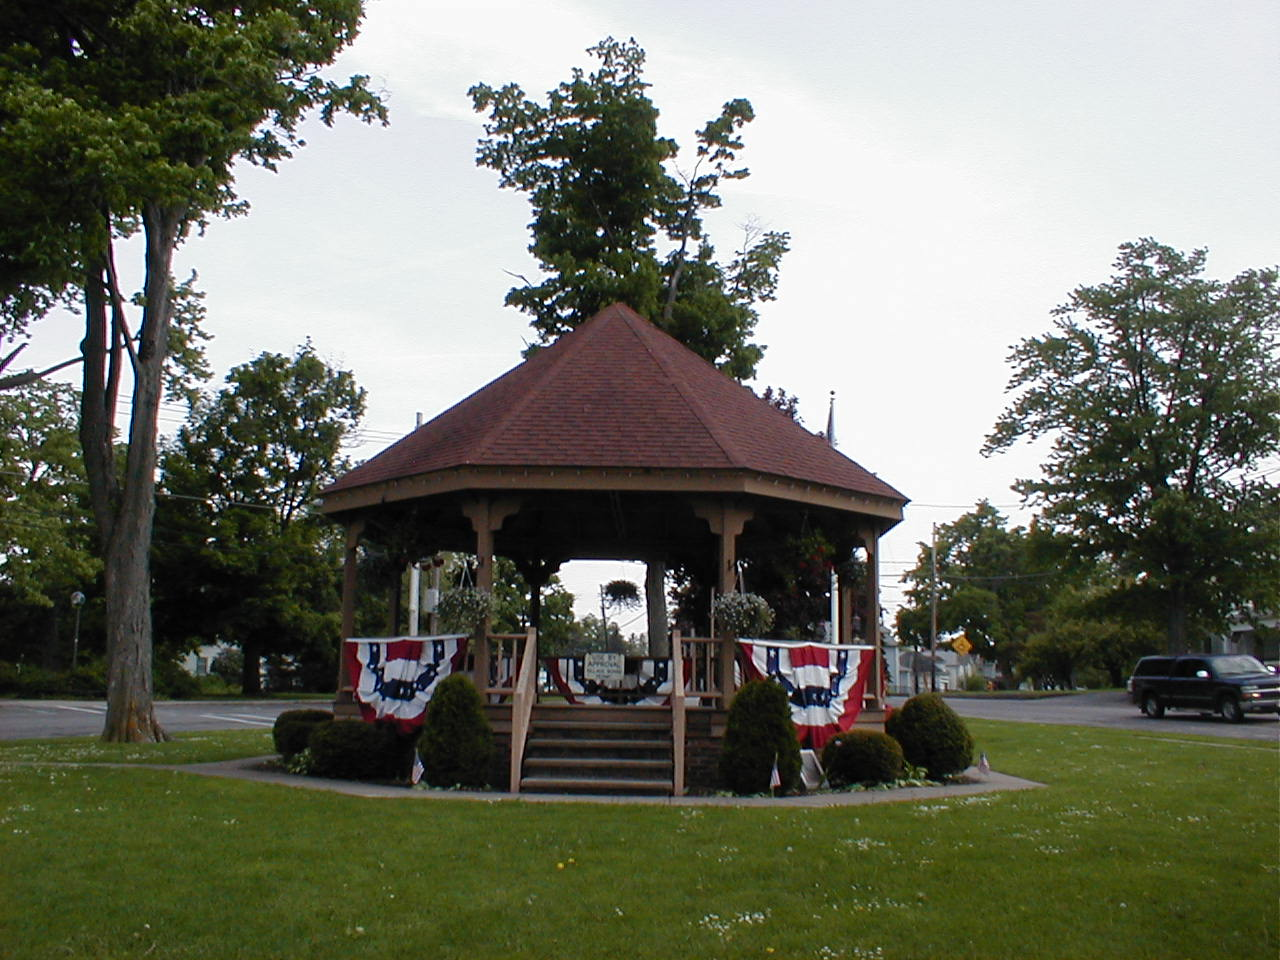 New york genesee county oakfield - The Peaceful Community Of Oakfield Lies Quietly Between The Major Cities Of Buffalo And Rochester Approximately Five Miles North Of The New York State